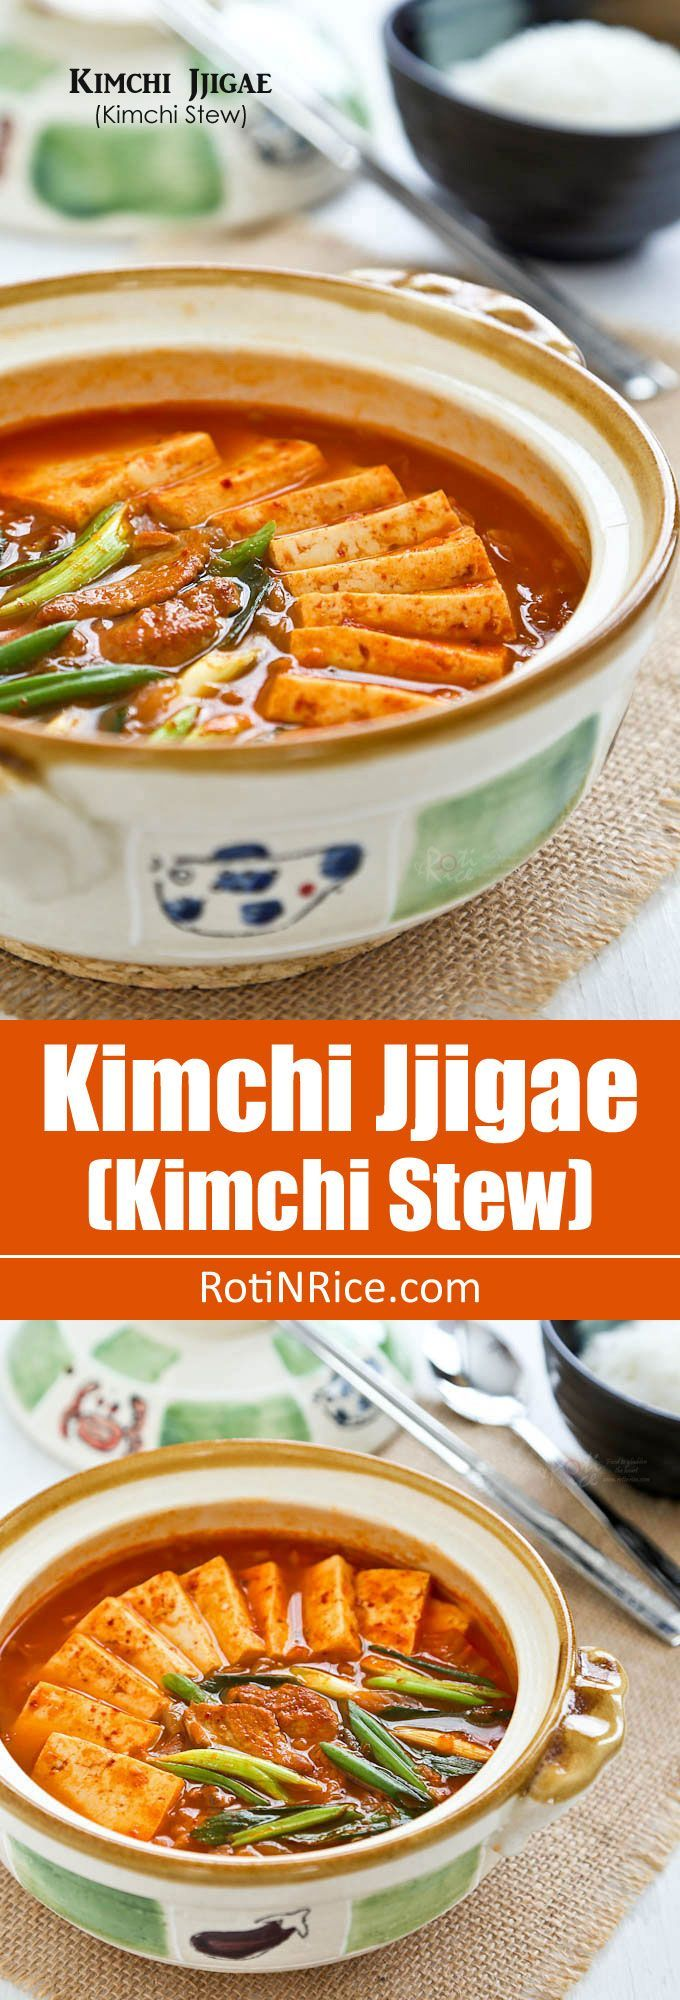 Kimchi Jjigae (Kimchi Stew), a popular spicy Korean stew made with ...